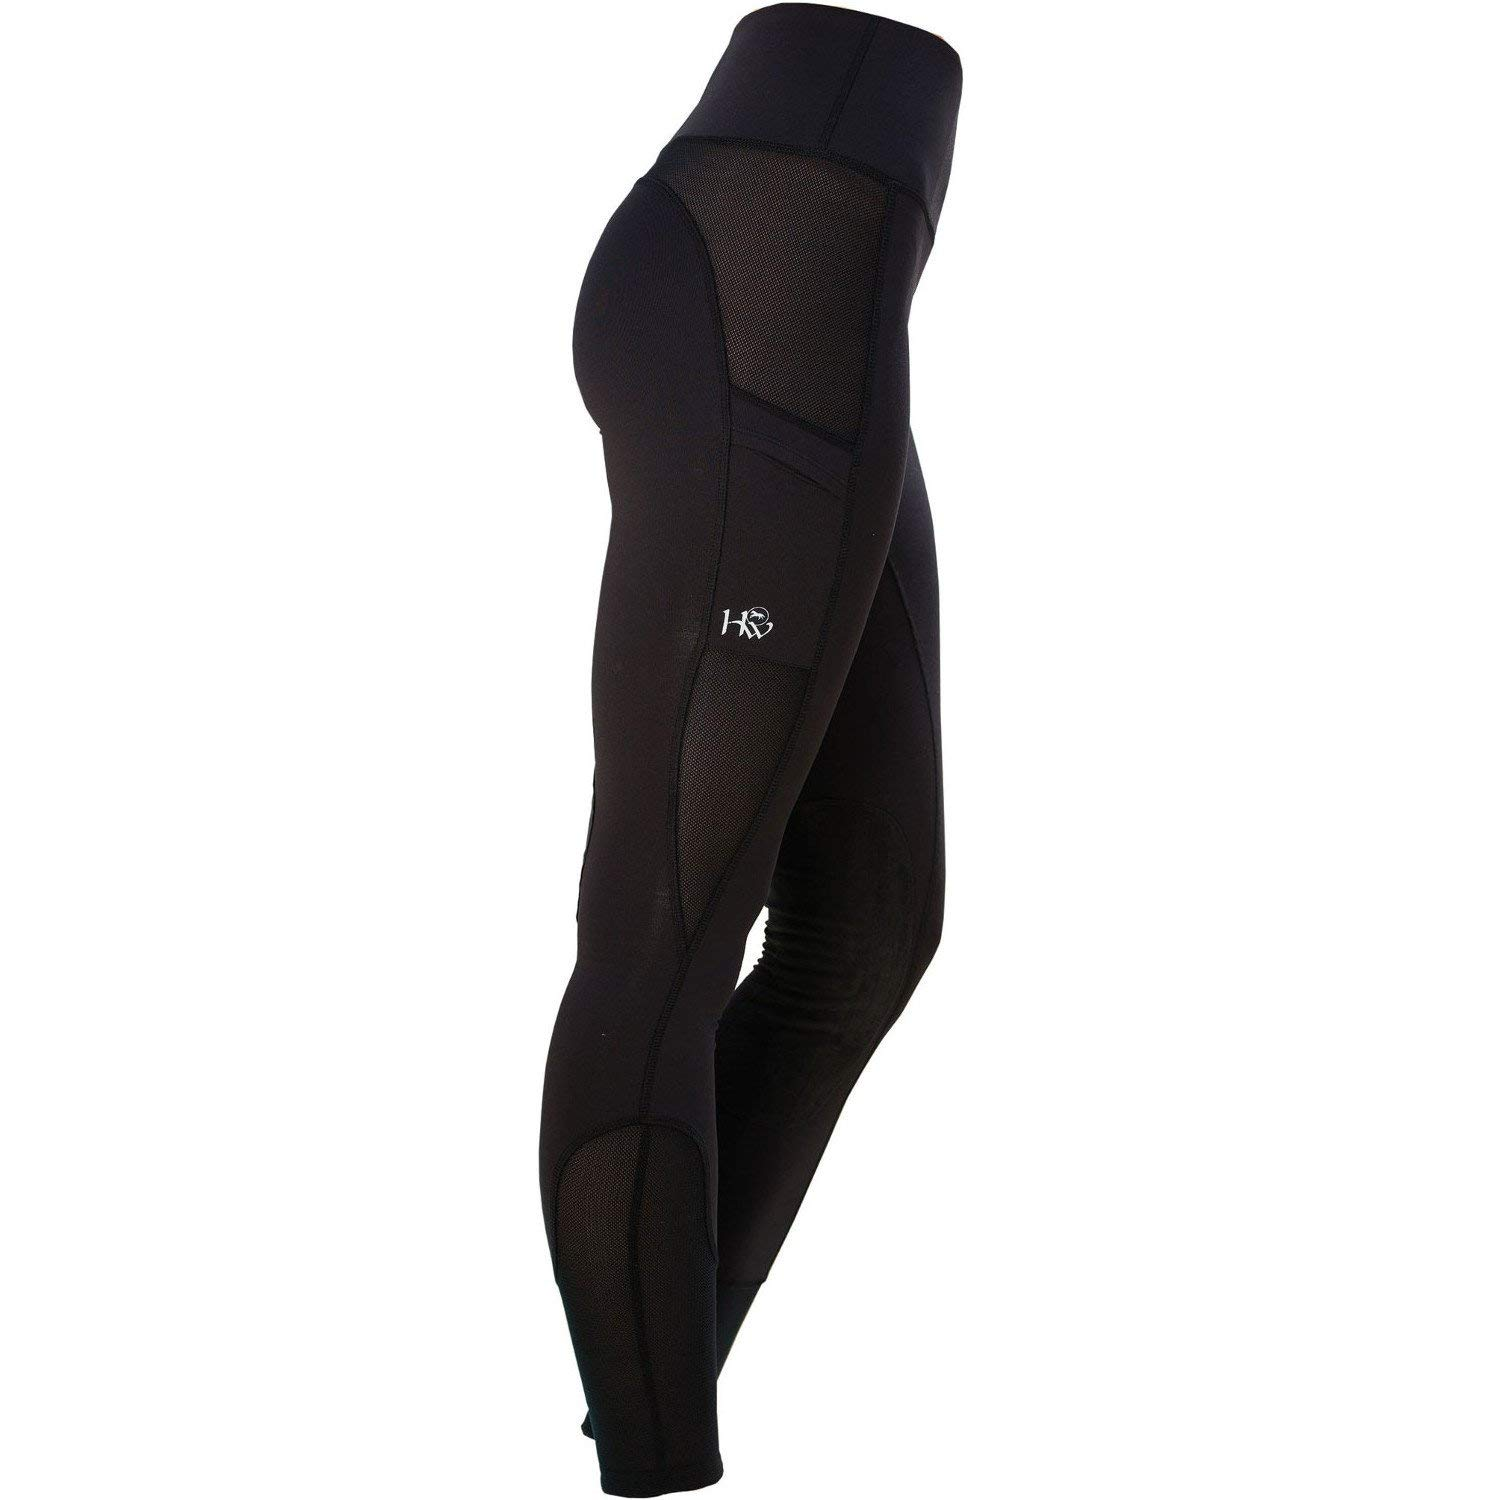 (XX-Small, Black) - Horseware Womens Riding Tights - Black   B0735H8BKX